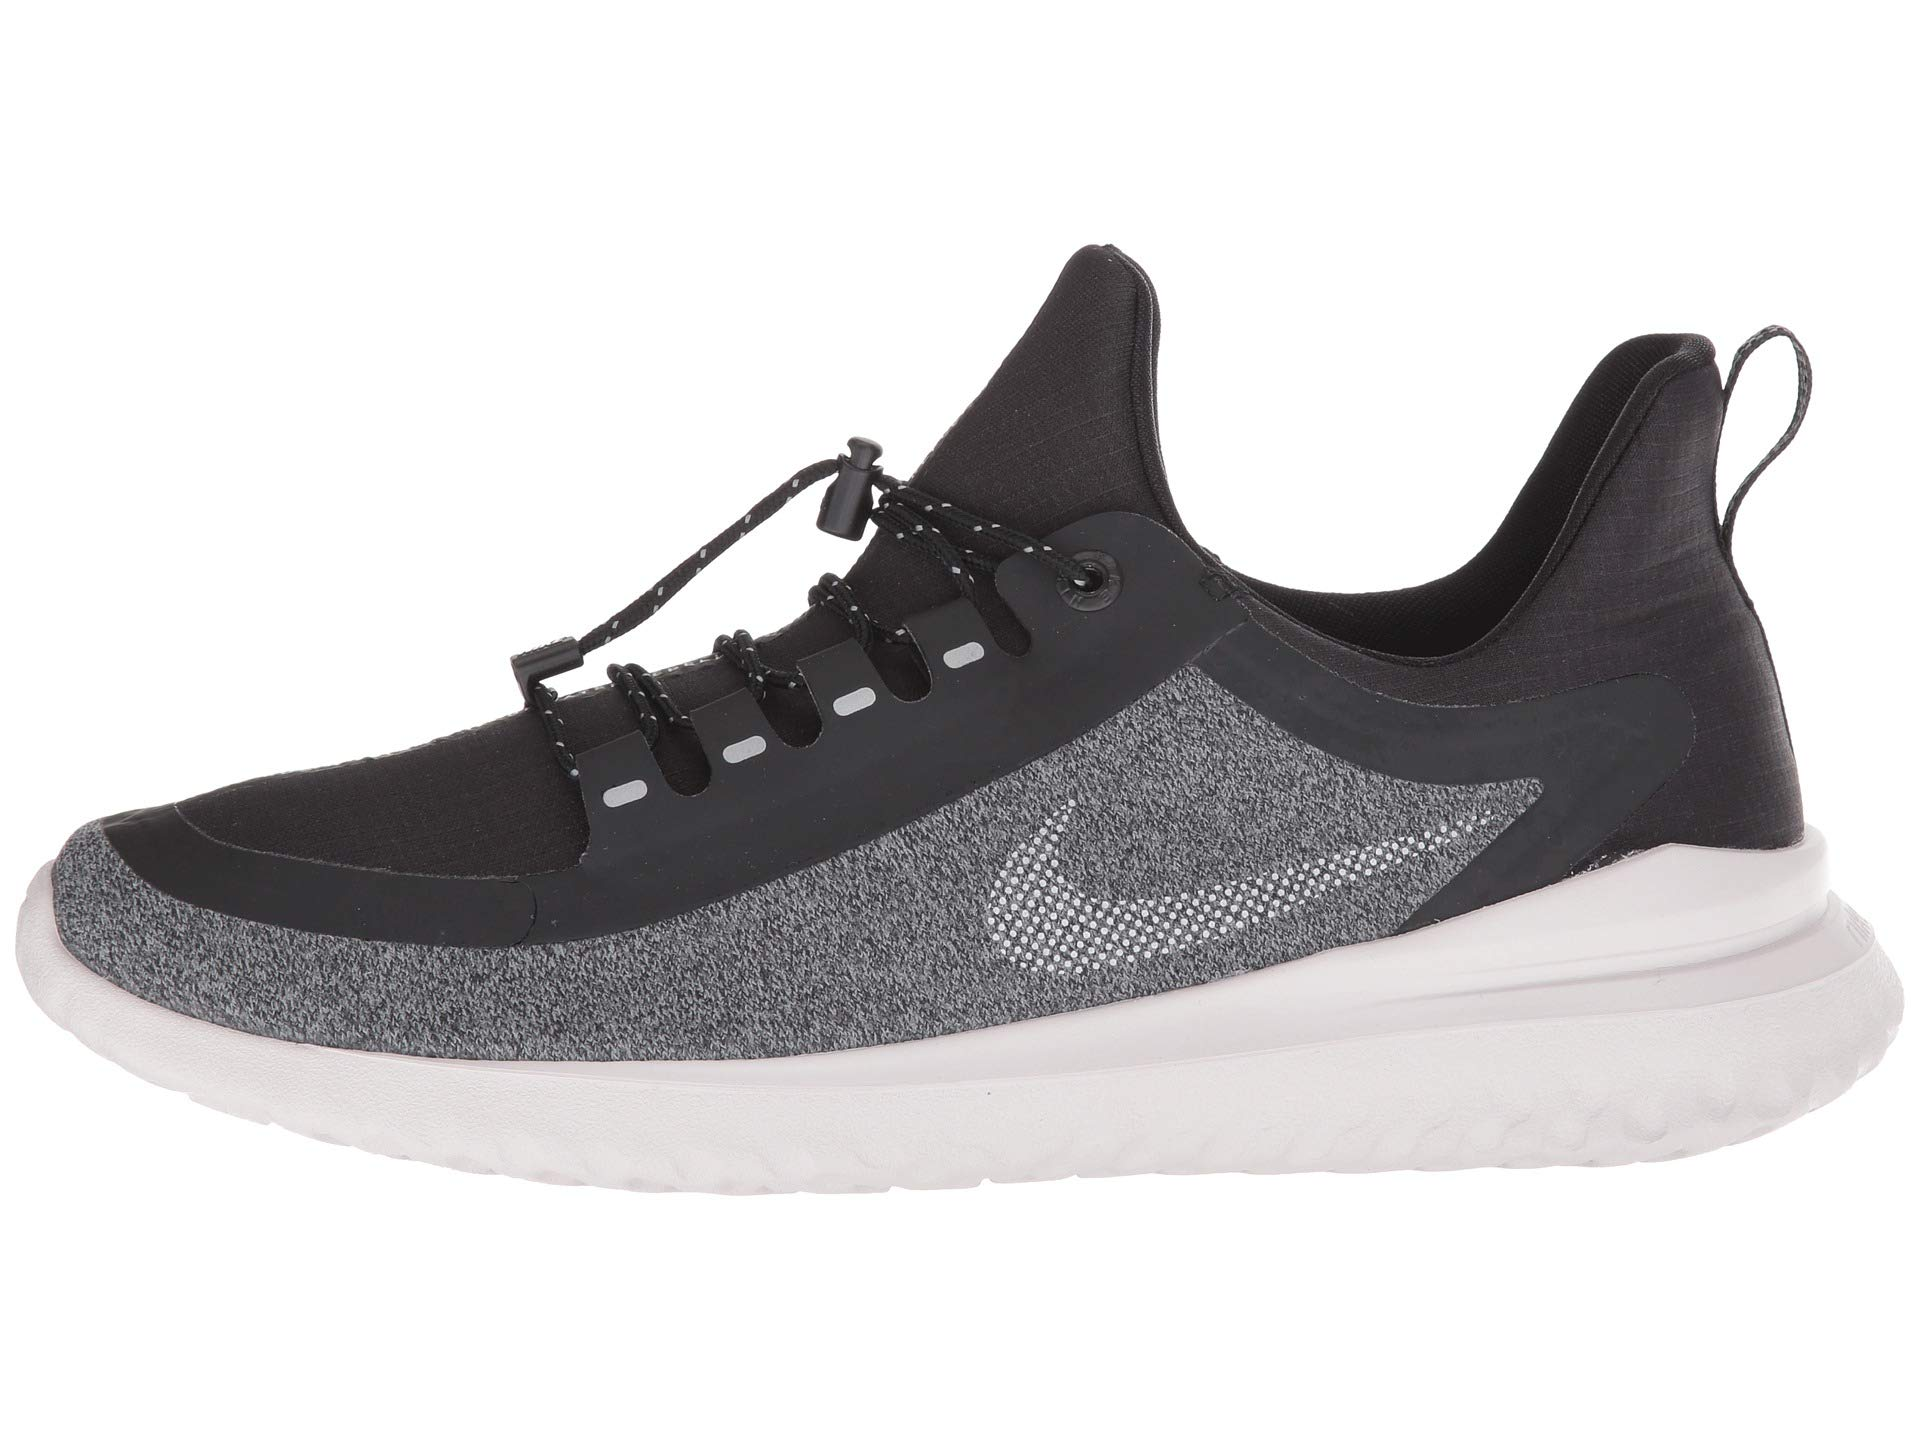 Shield Silver Black Nike Grey Rival cool Renew metallic TEAvRq